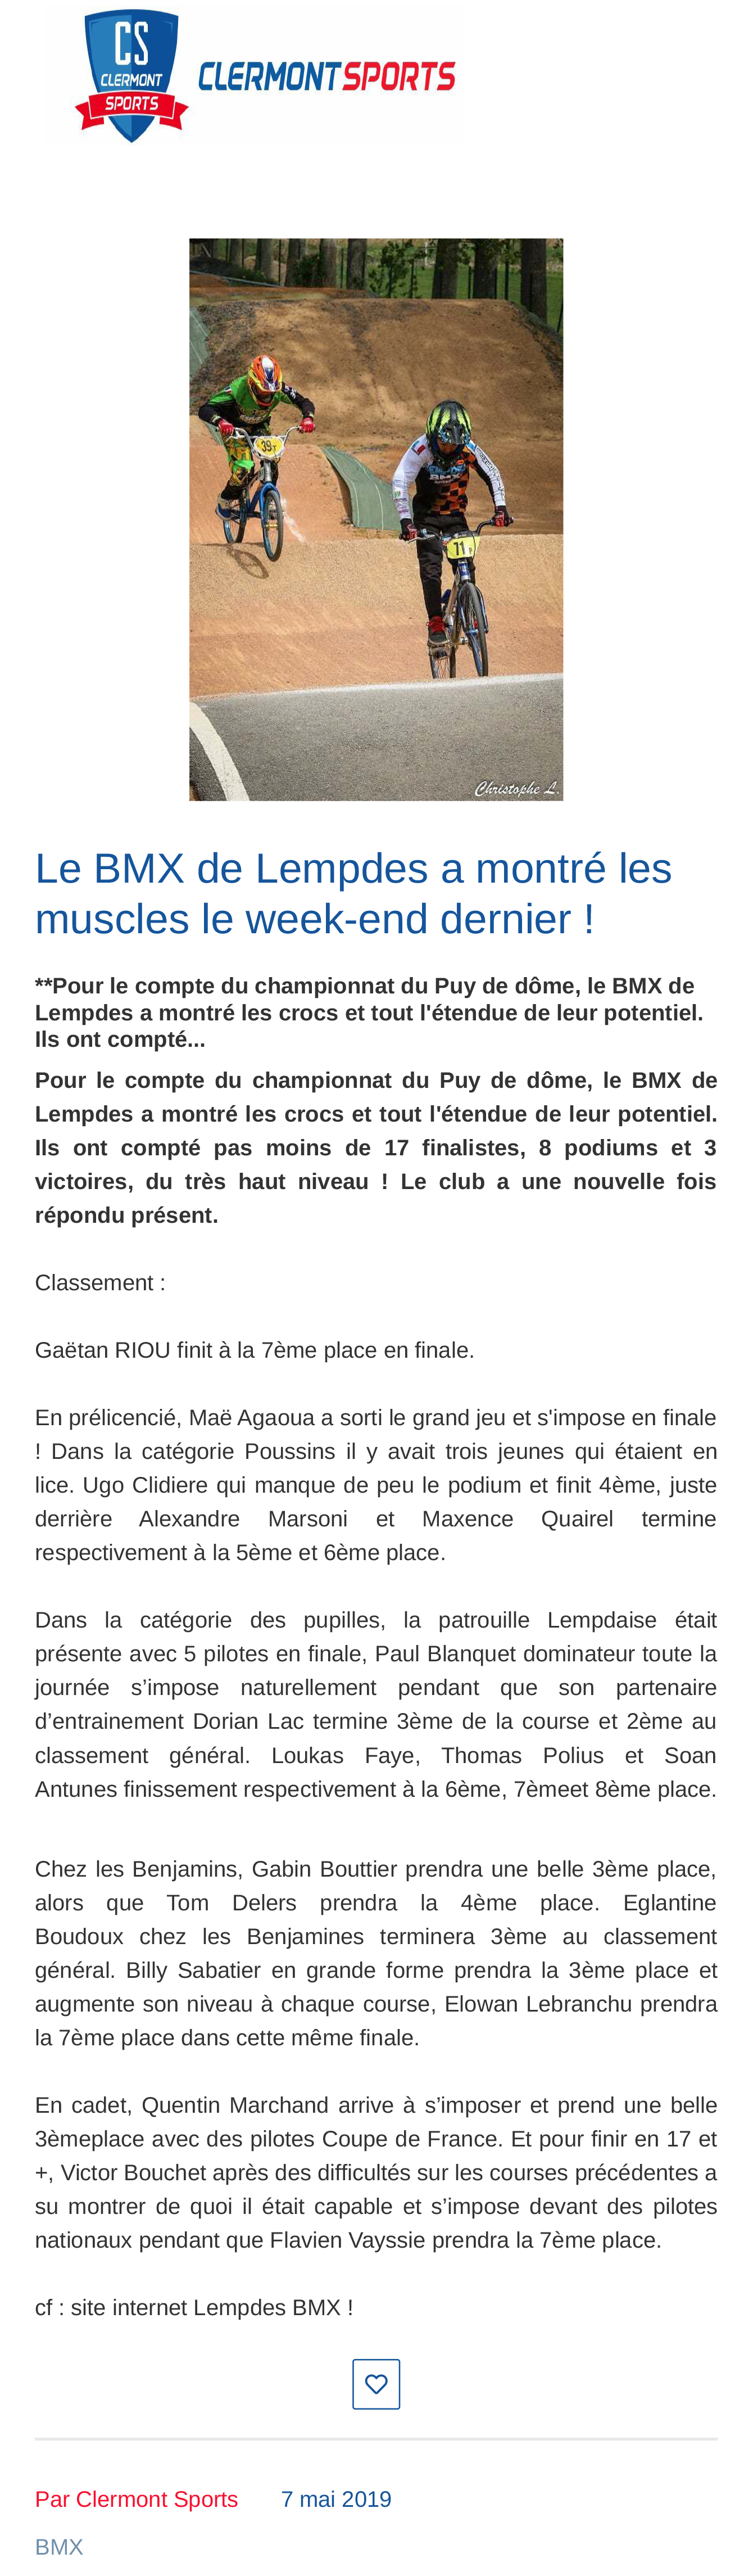 2019 05 07 clermont sports